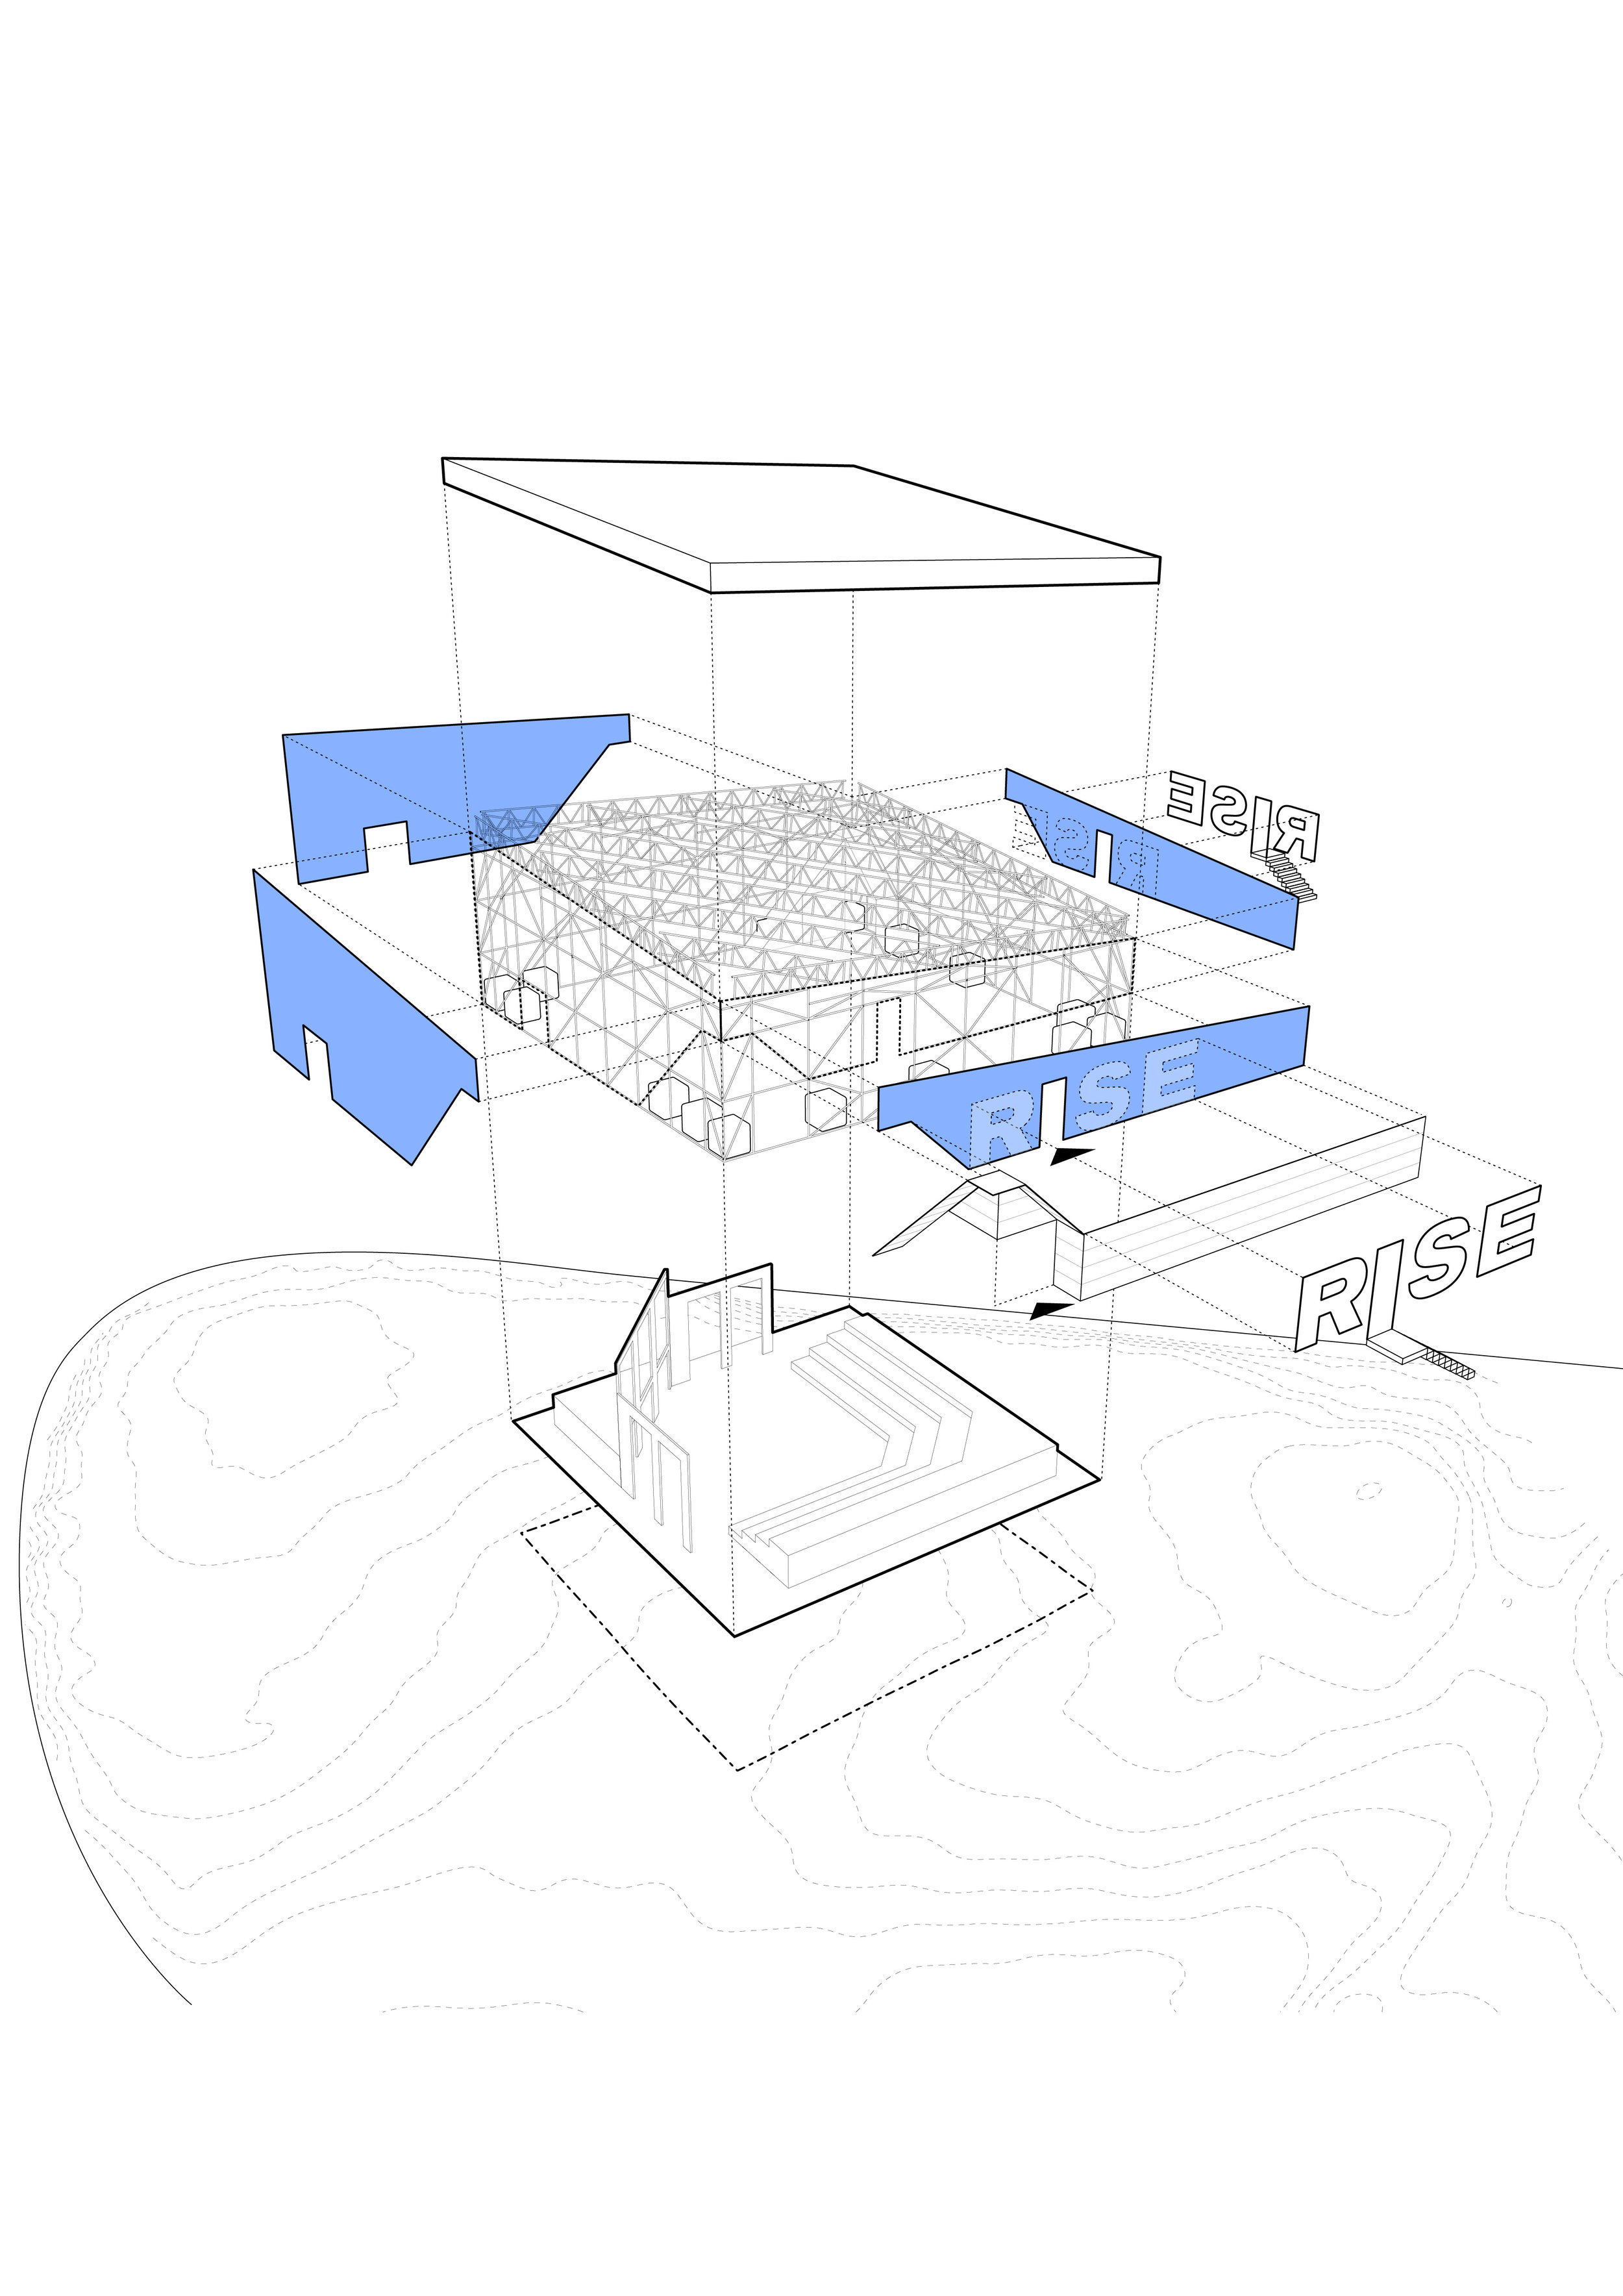 Collective-Works-The-OVNV-Old-Vic-New-Voices-RISE Temporary-Theatre-Exploded-Axonometric-Diagram-Architecture.jpg